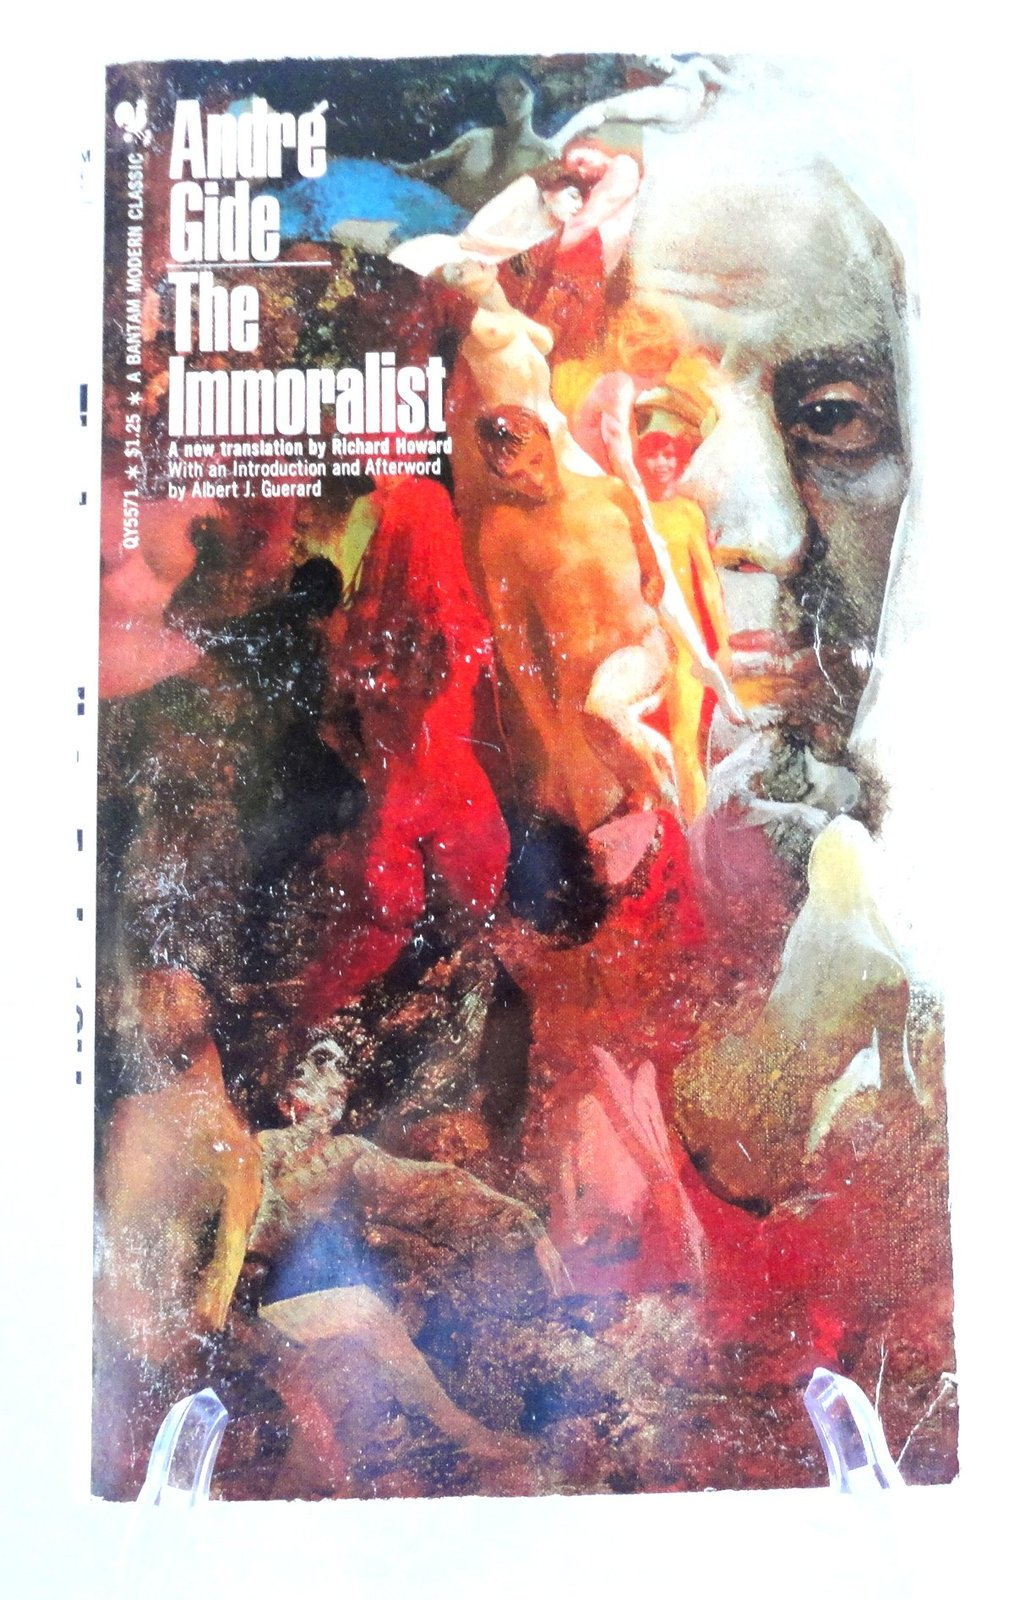 The Immoralist [Paperback] [Jan 01, 1970] Gide, Andre - Books